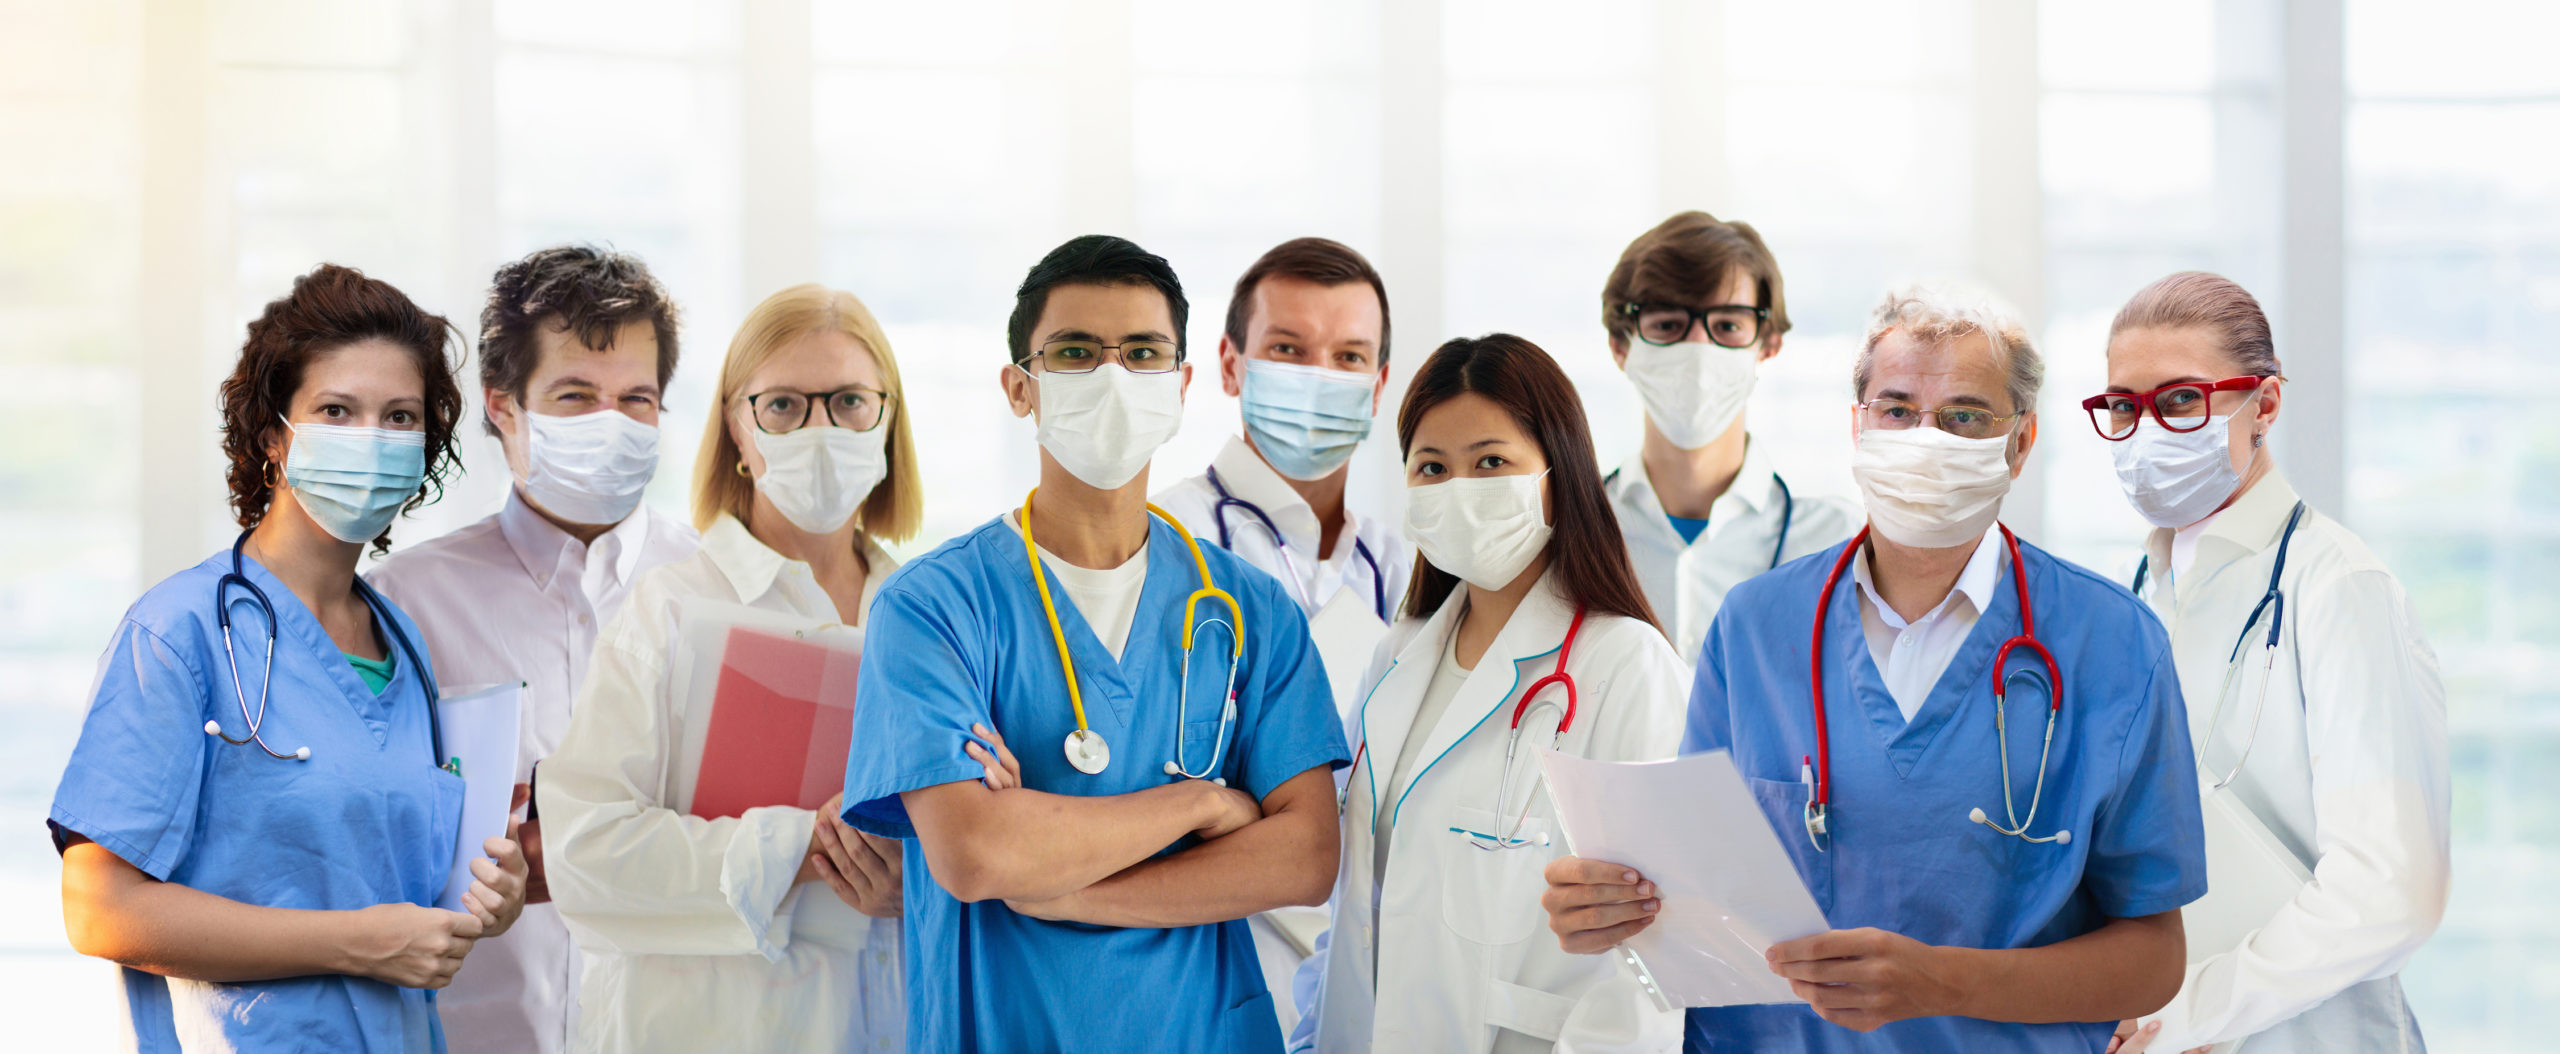 Paid Diversity Doc Pic - Adjusted